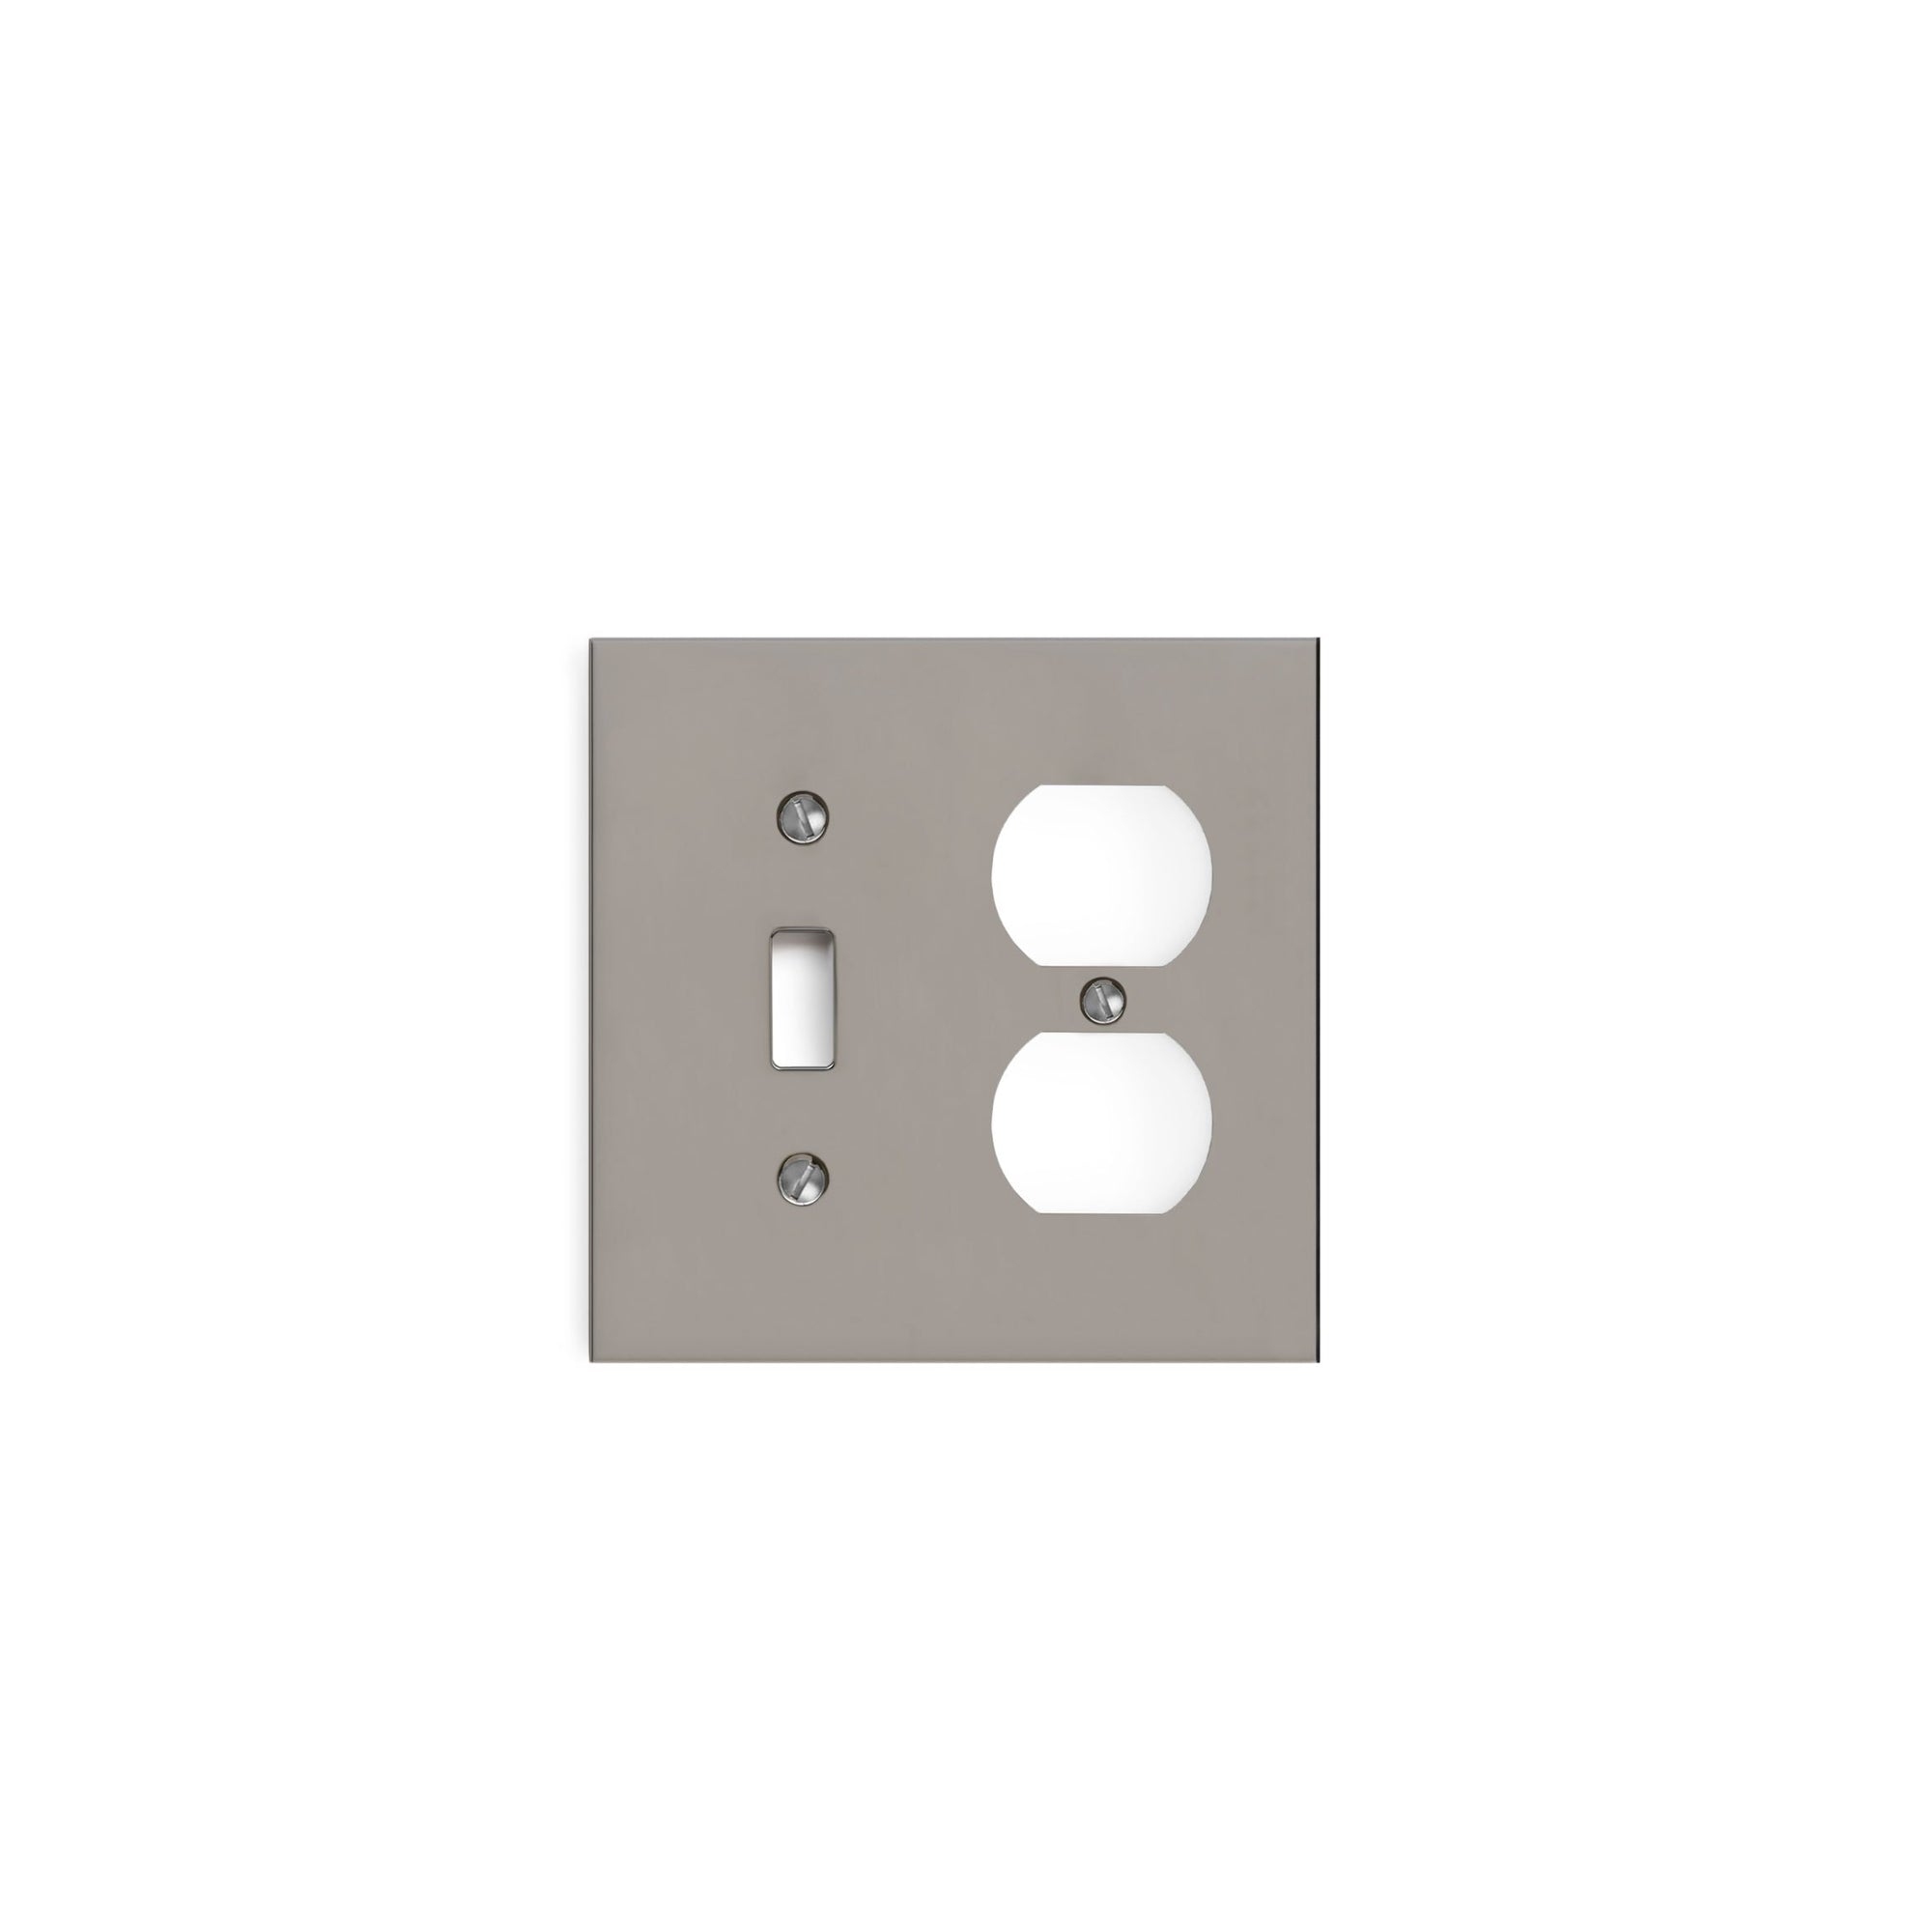 2000D-SWT-PLG-CP Sherle Wagner International Modern Double Single Switch & Duplex Plug Plate in Polished Chrome metal finish